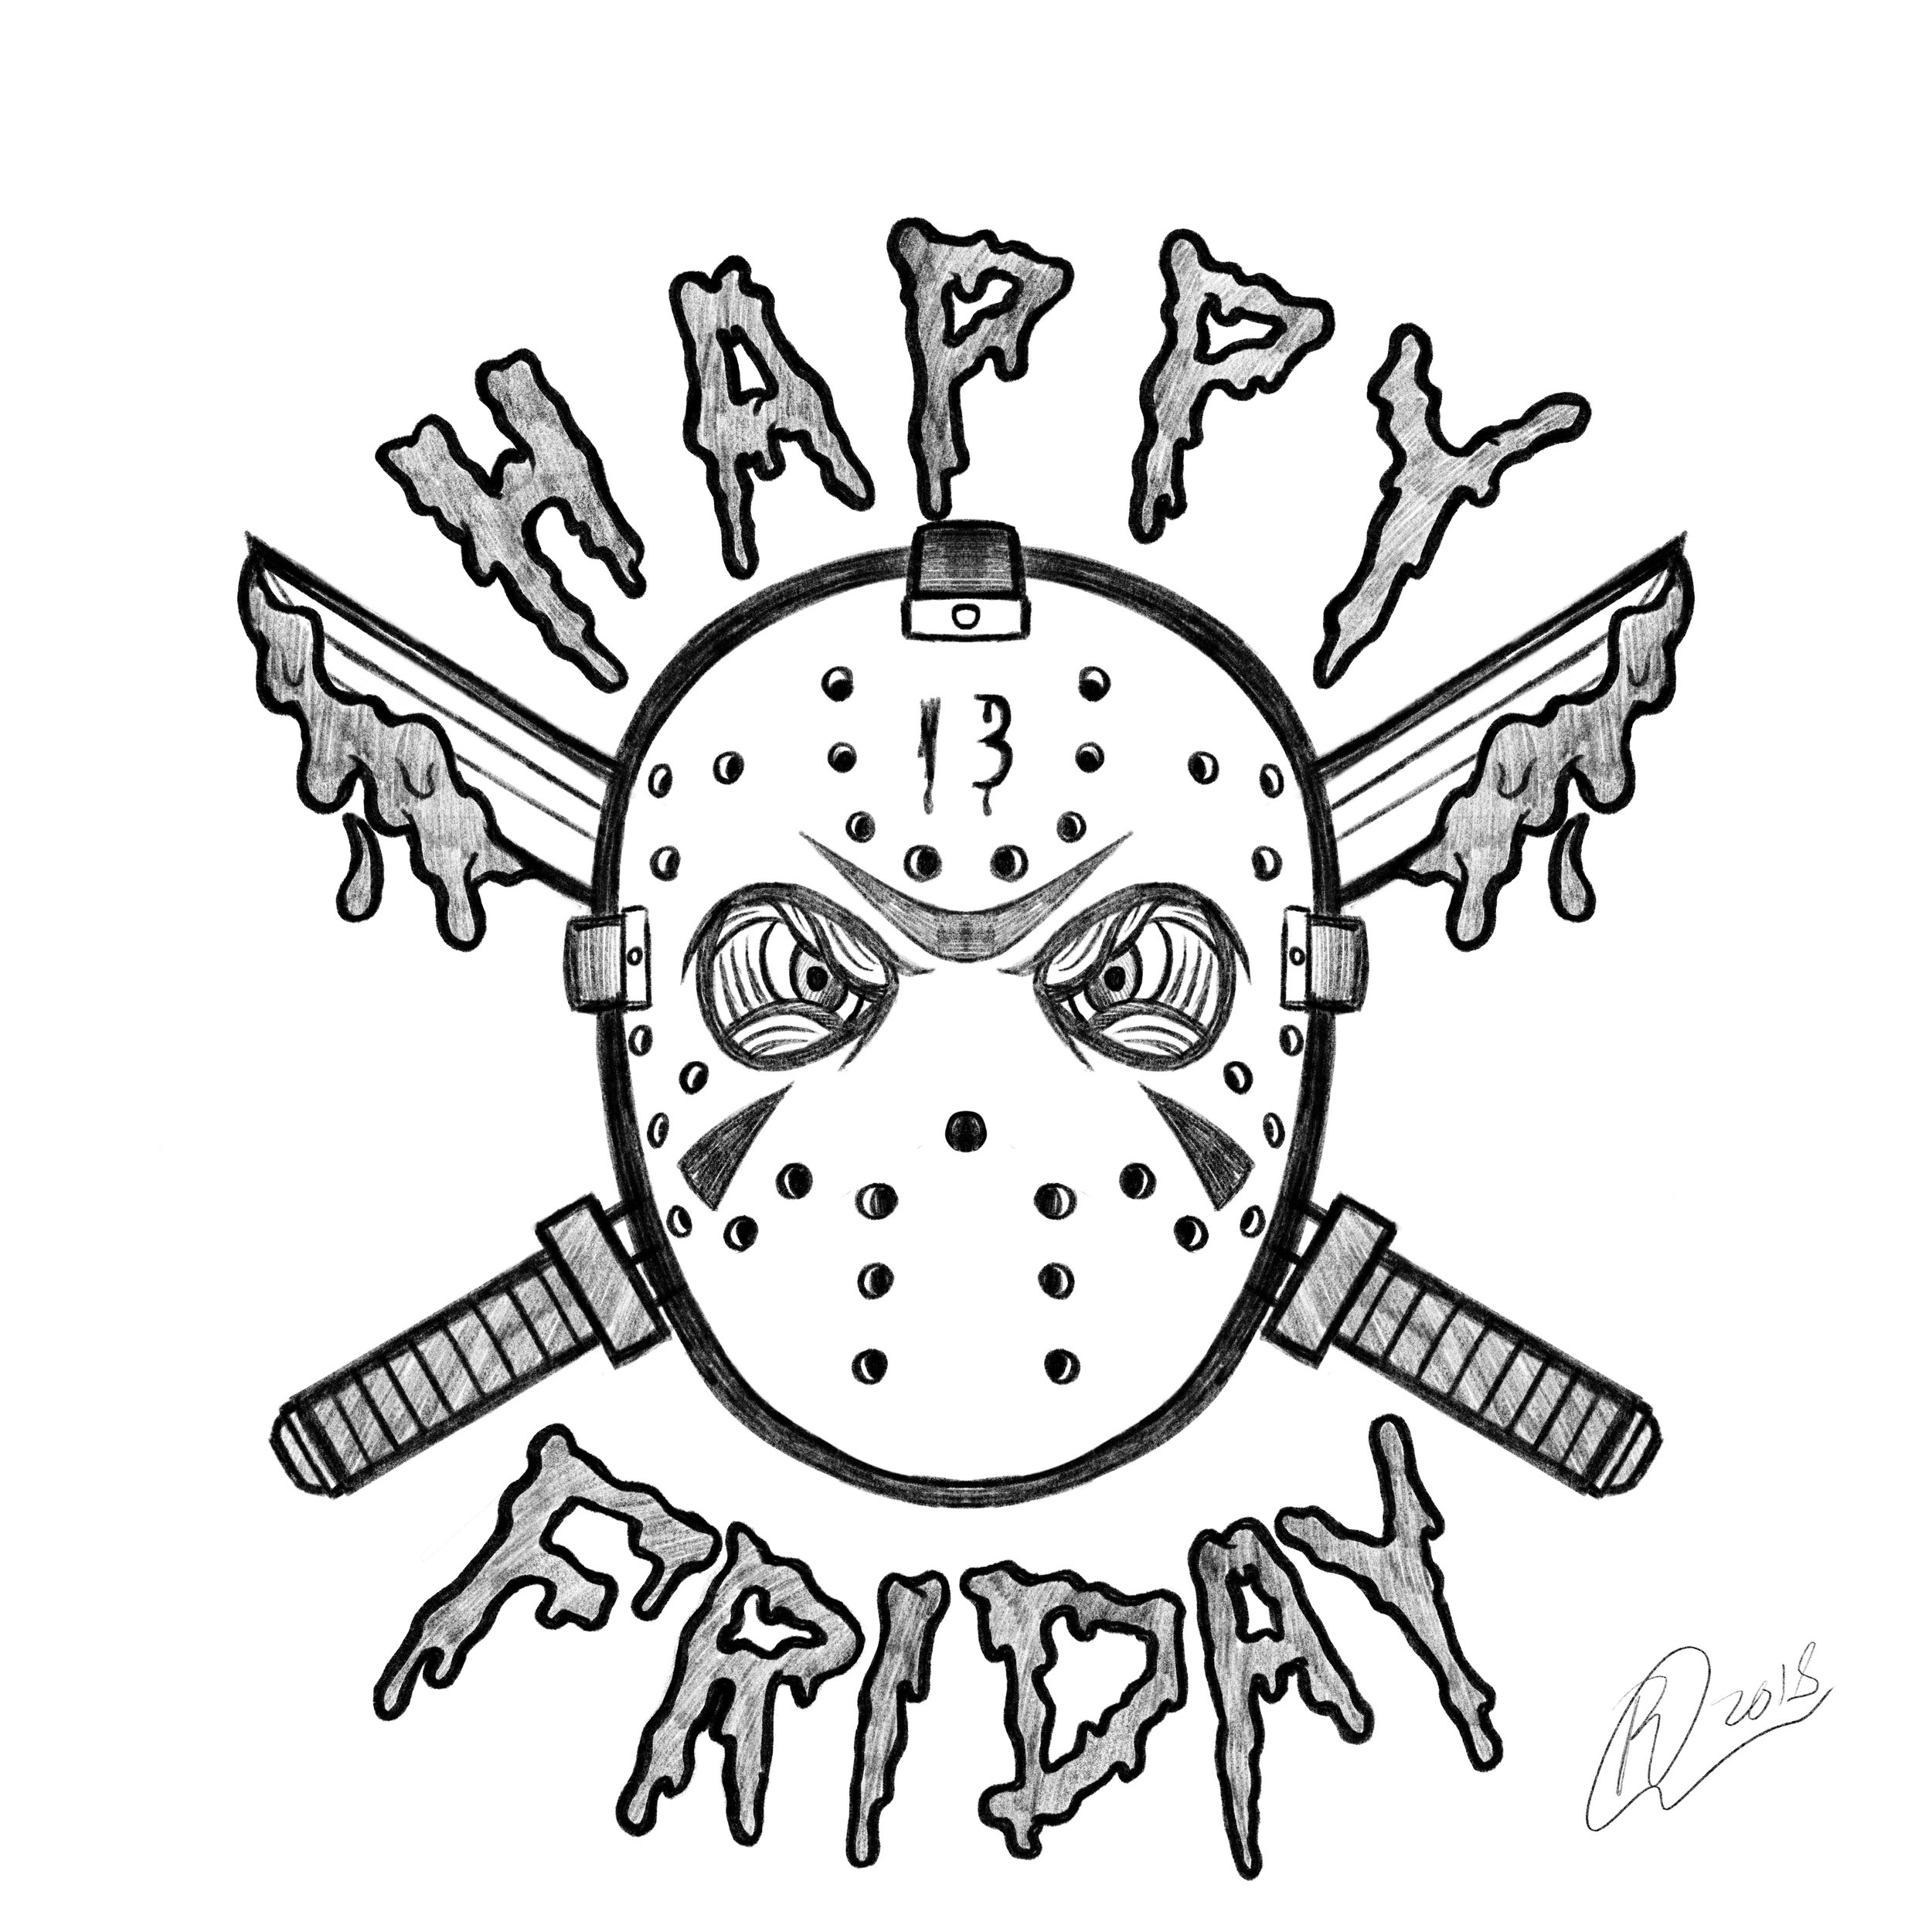 happy-friday-the-13th-jason-horror-movie-cartoon-orozco-design-sketch.JPG